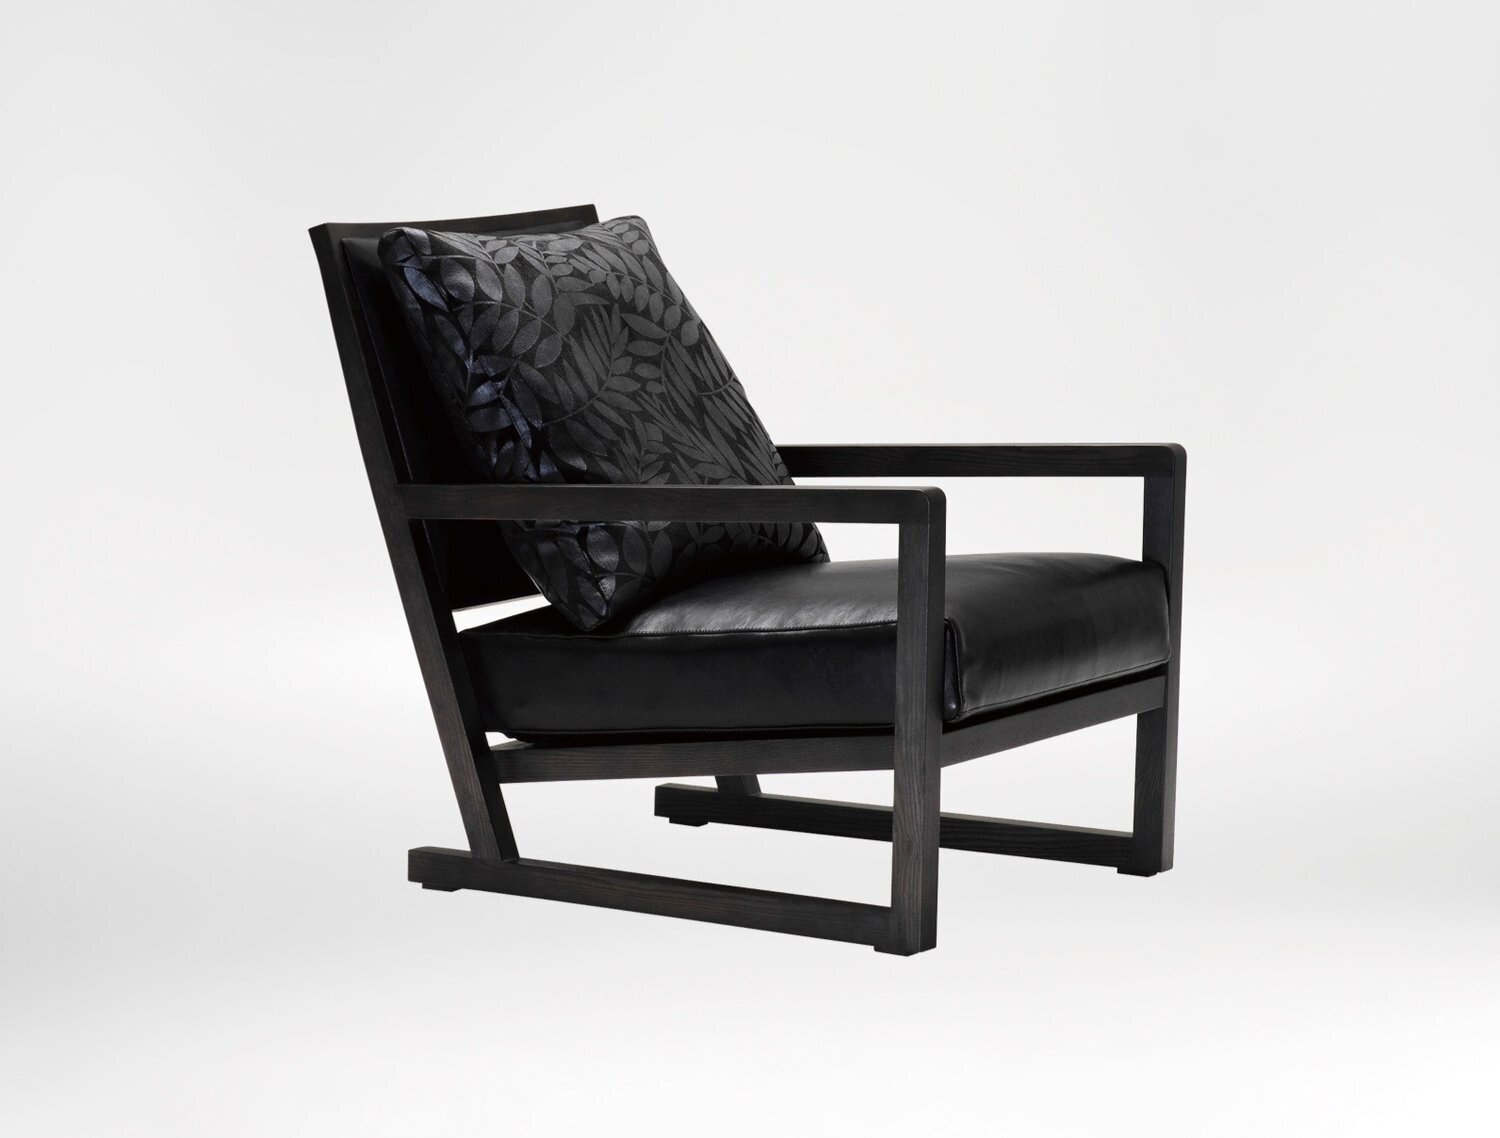 Simon Chair - Deep slanted seat cushion and sturdy armrests to offer immense comfort and support.